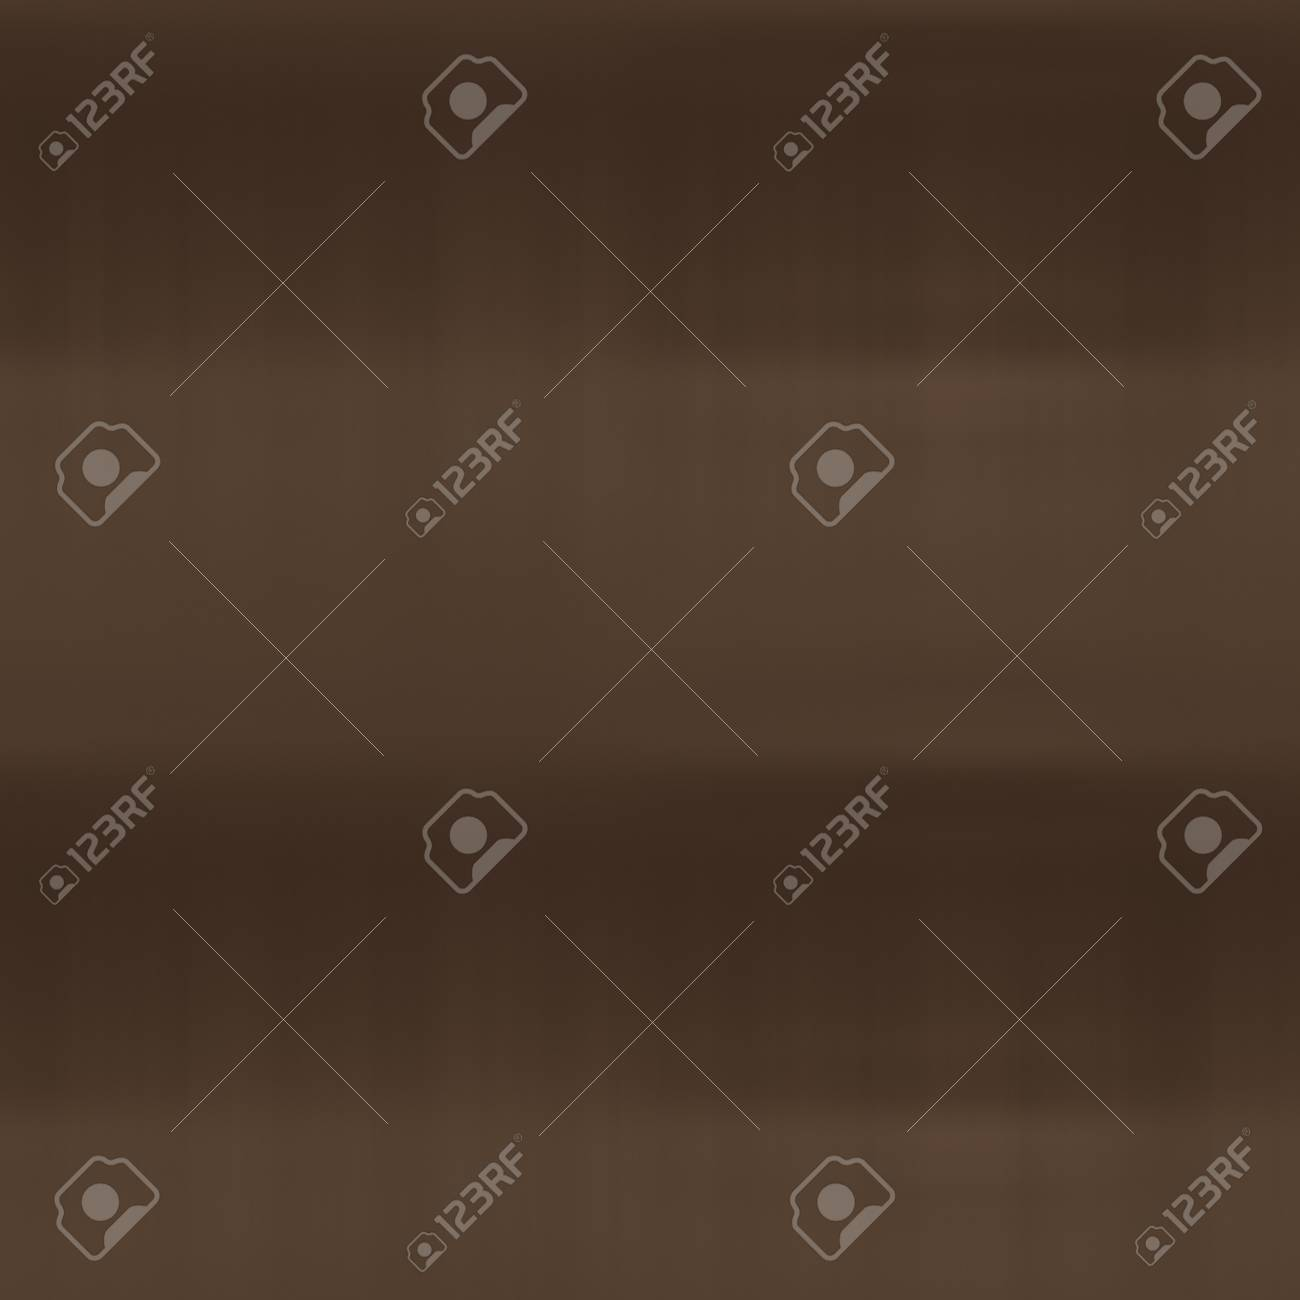 impressive metal surface tinted by brown color Stock Photo - 13630524